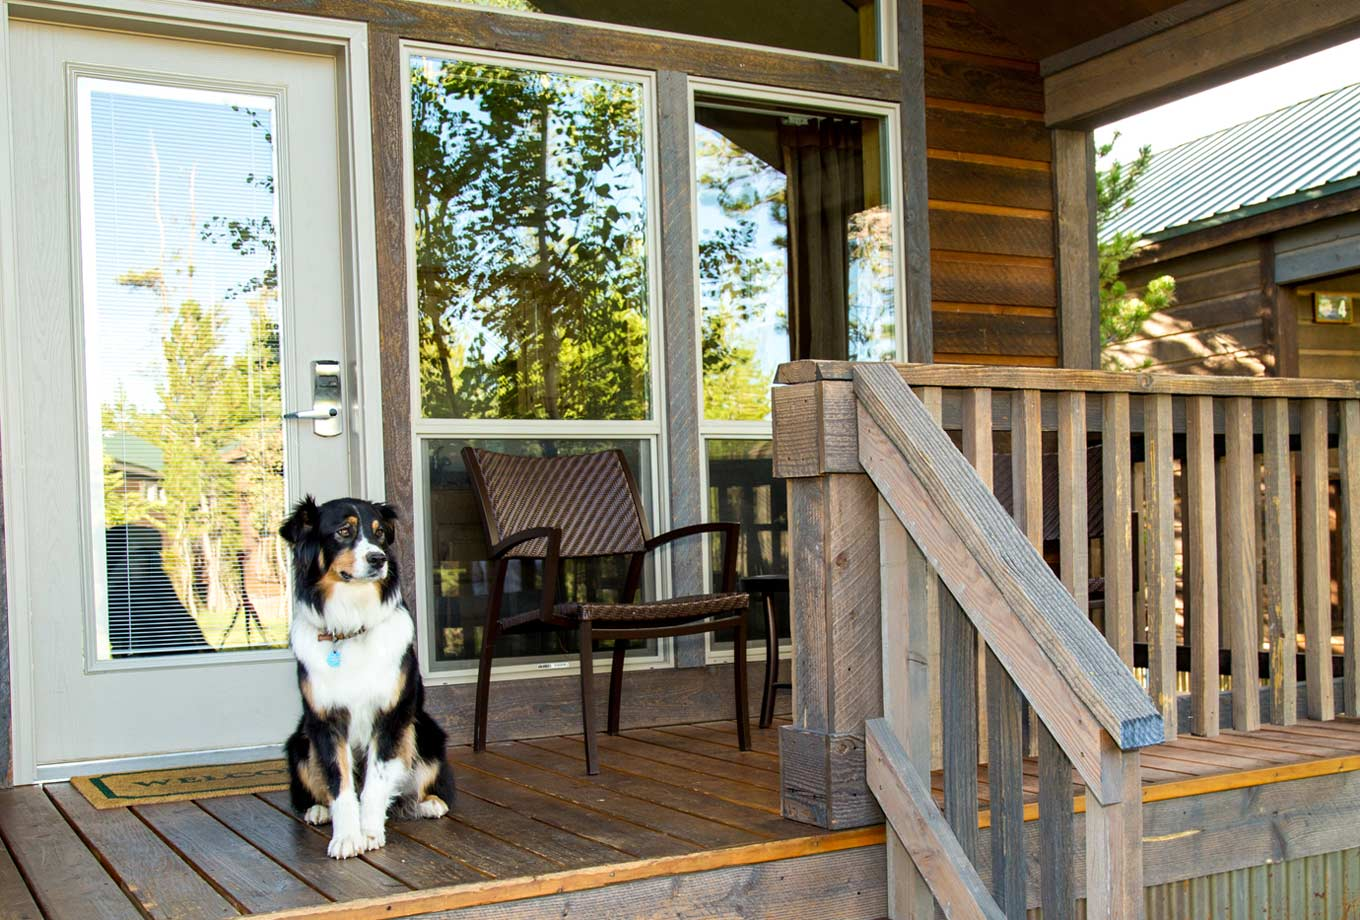 West Yellowstone pet friendly lodging - Explorer Cabins at Yellowstone